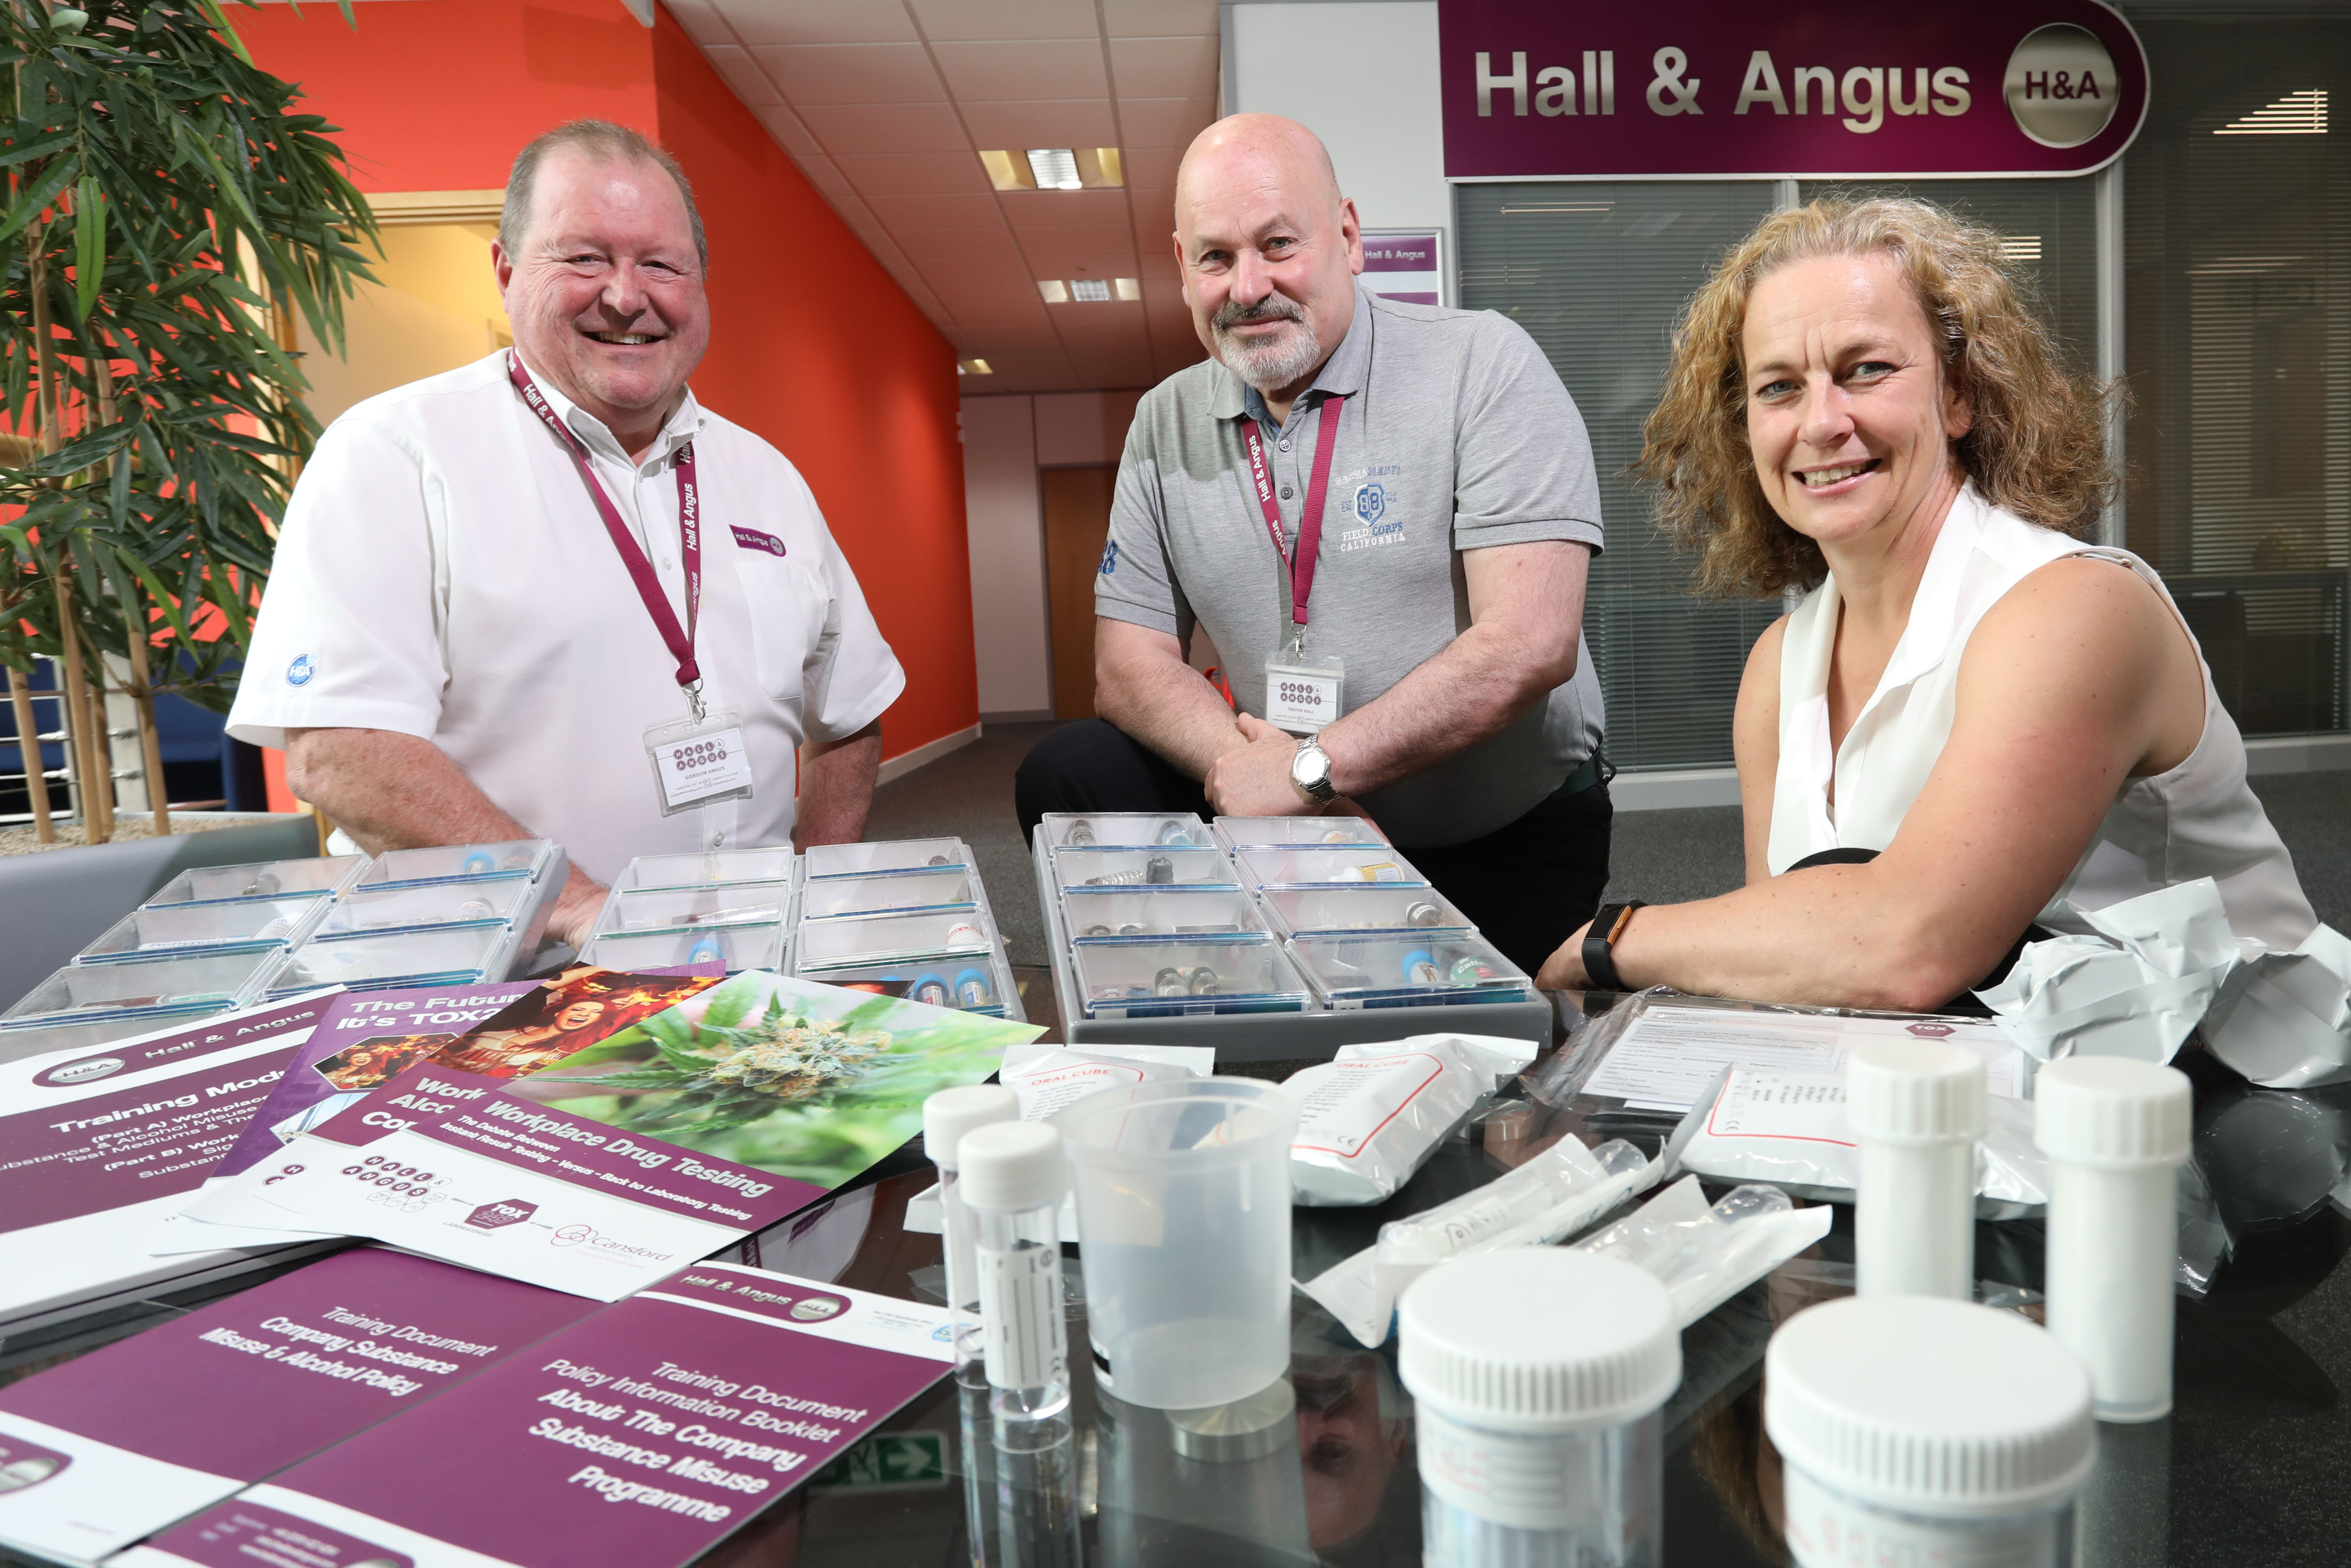 Sunderland based Hall & Angus secures North East Small Loan Fund business to bring innovative new product to market